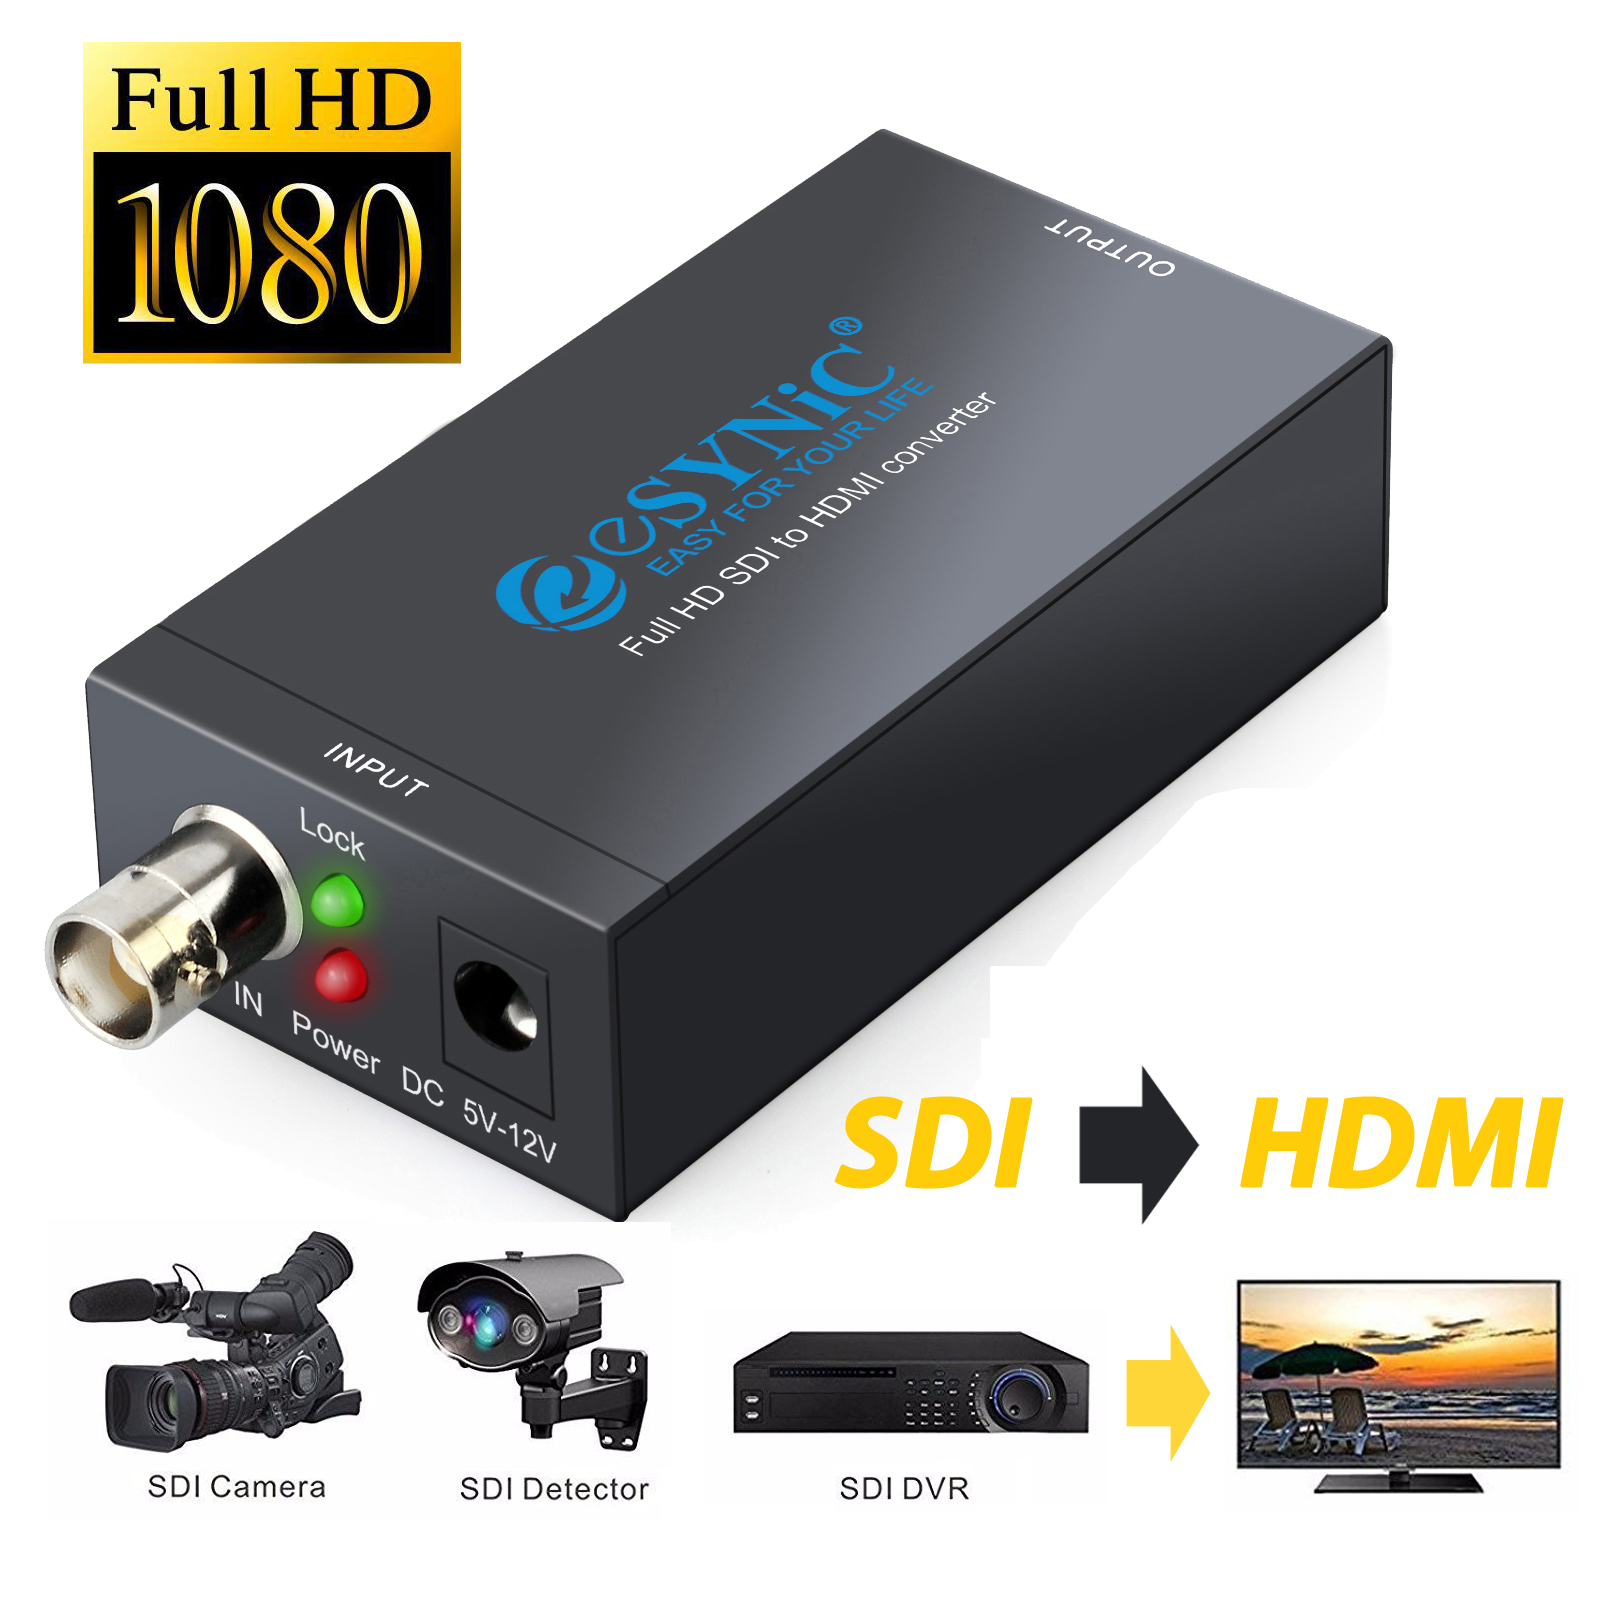 ESYNIC SDI to HDMI Converter Mini High definition-SDI SD-SDI 3G-SDI to HDMI Online video Adapter Converter Box 1080P BNC Port SDI to HDMI Movie Audio Converter for SDI Digicam HDTV Projector